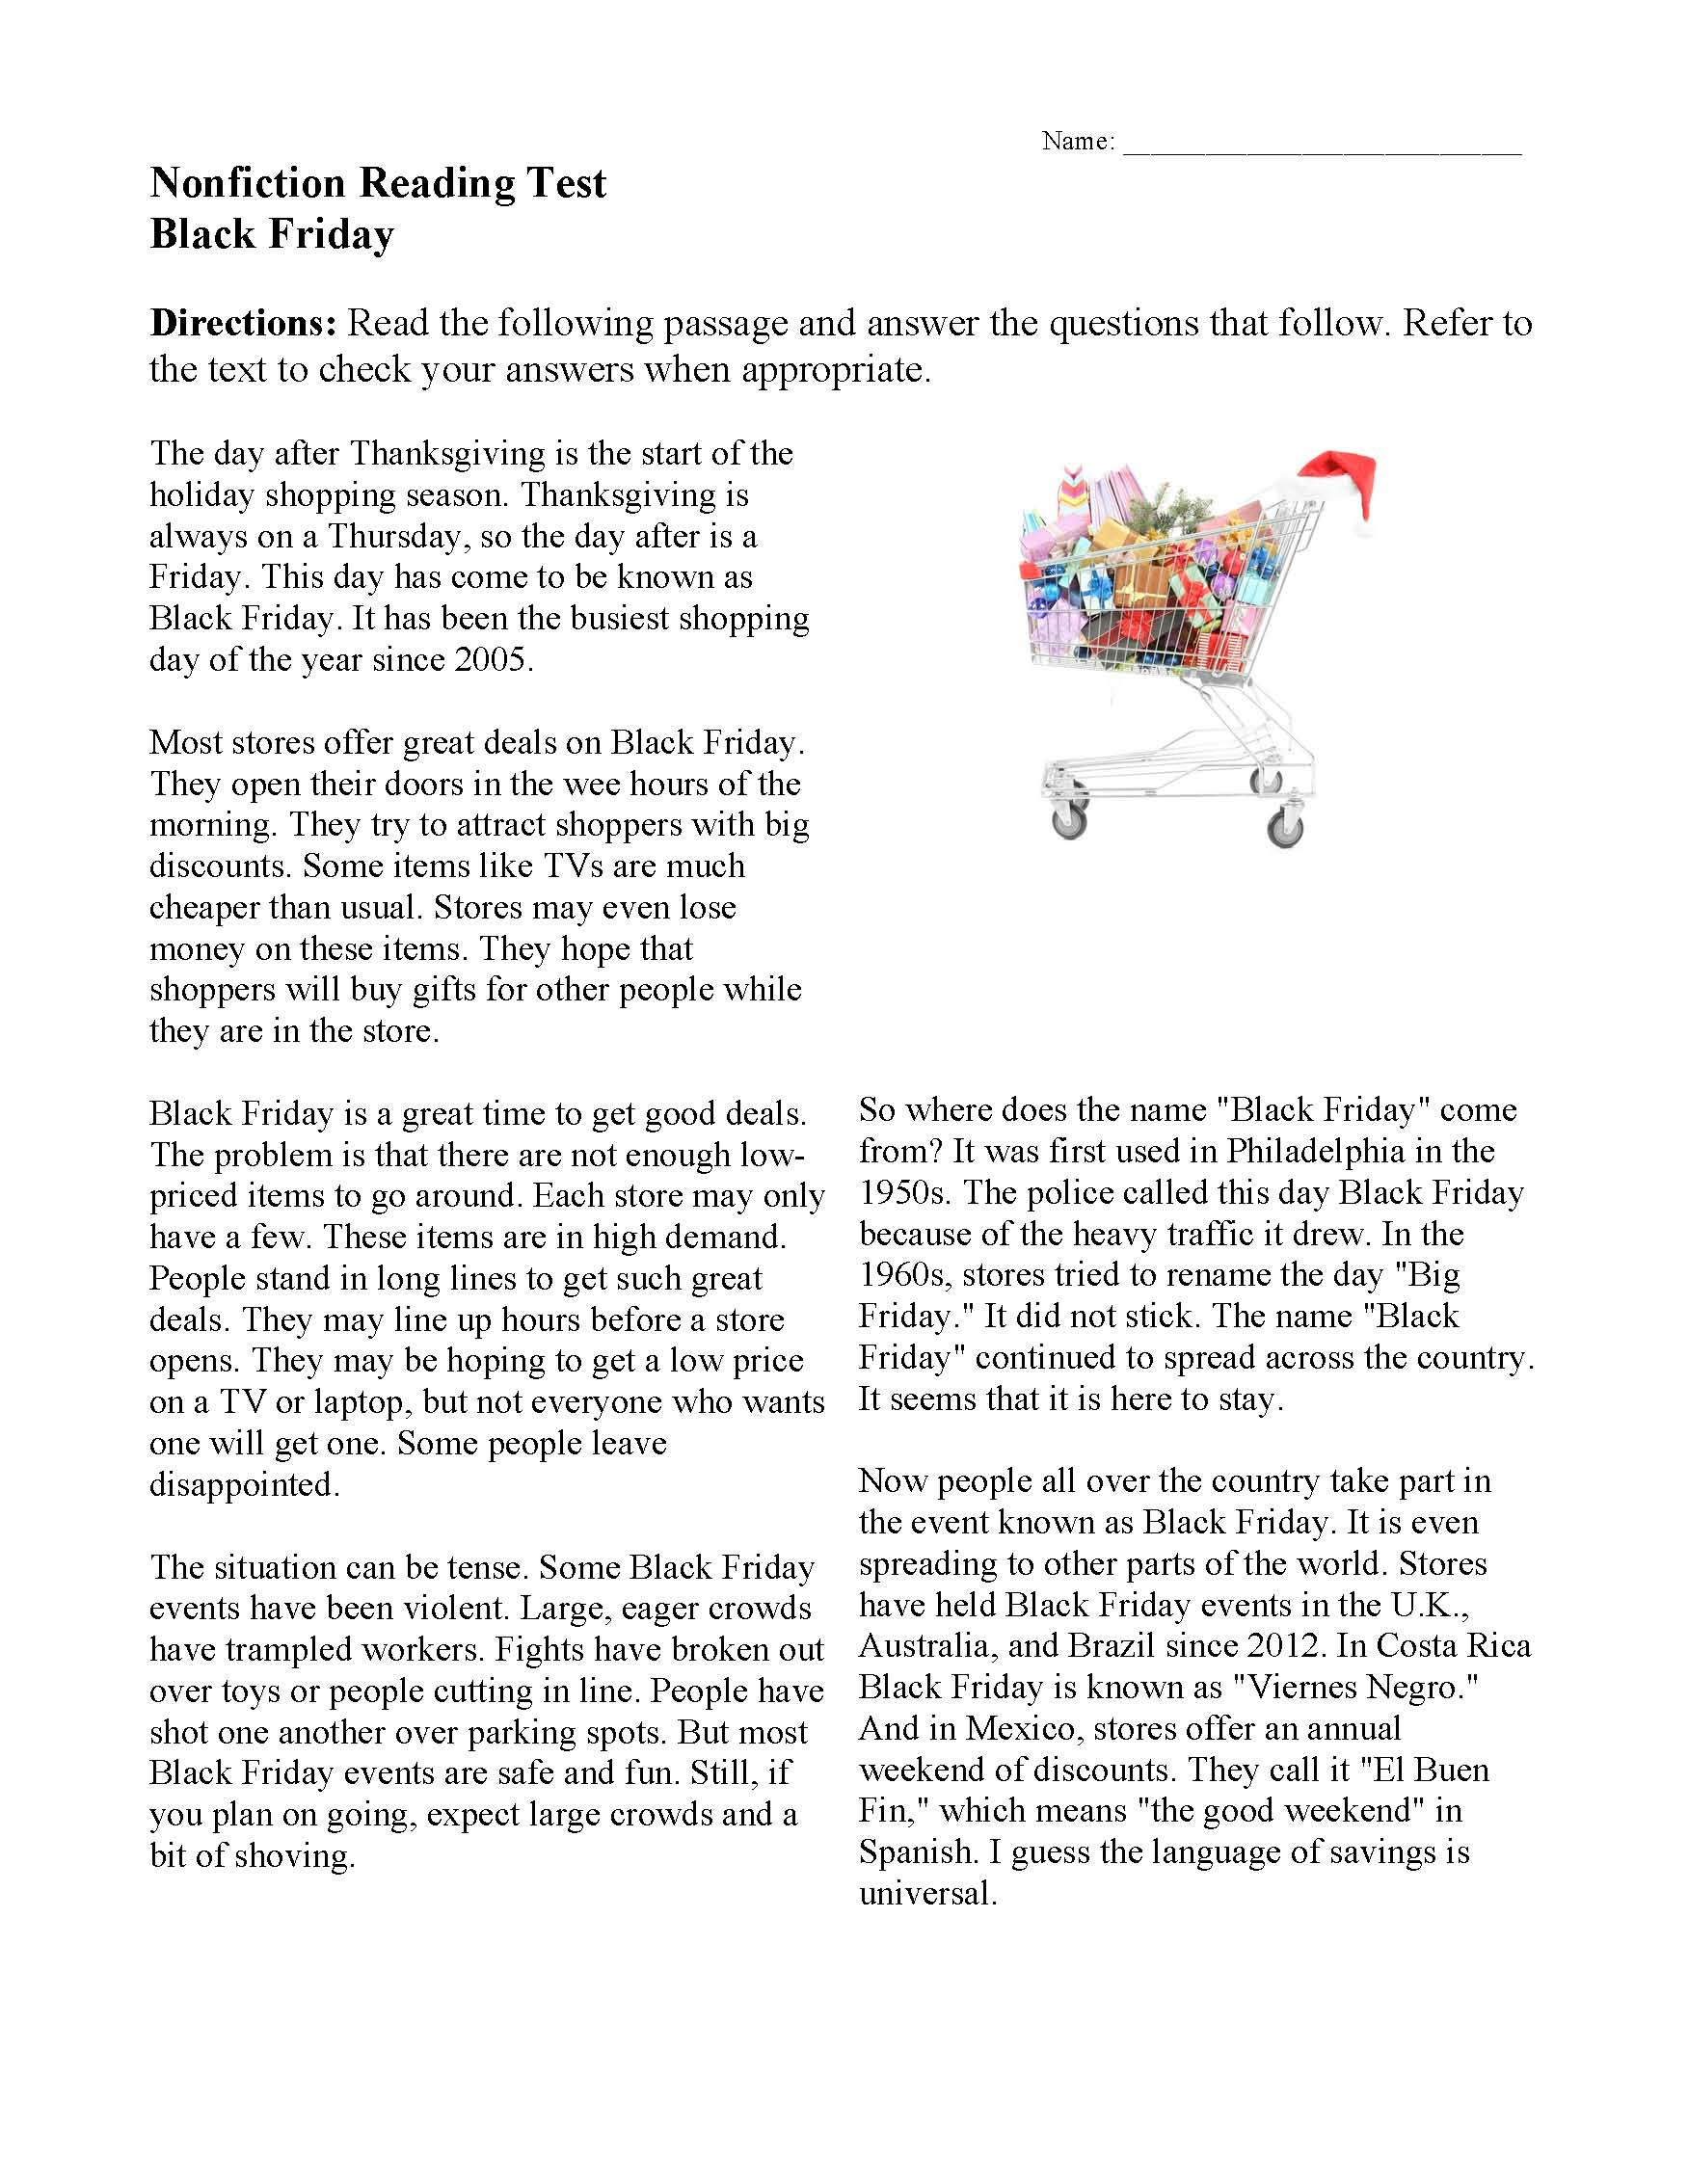 Thanksgiving Reading Comprehension Worksheets Black Friday